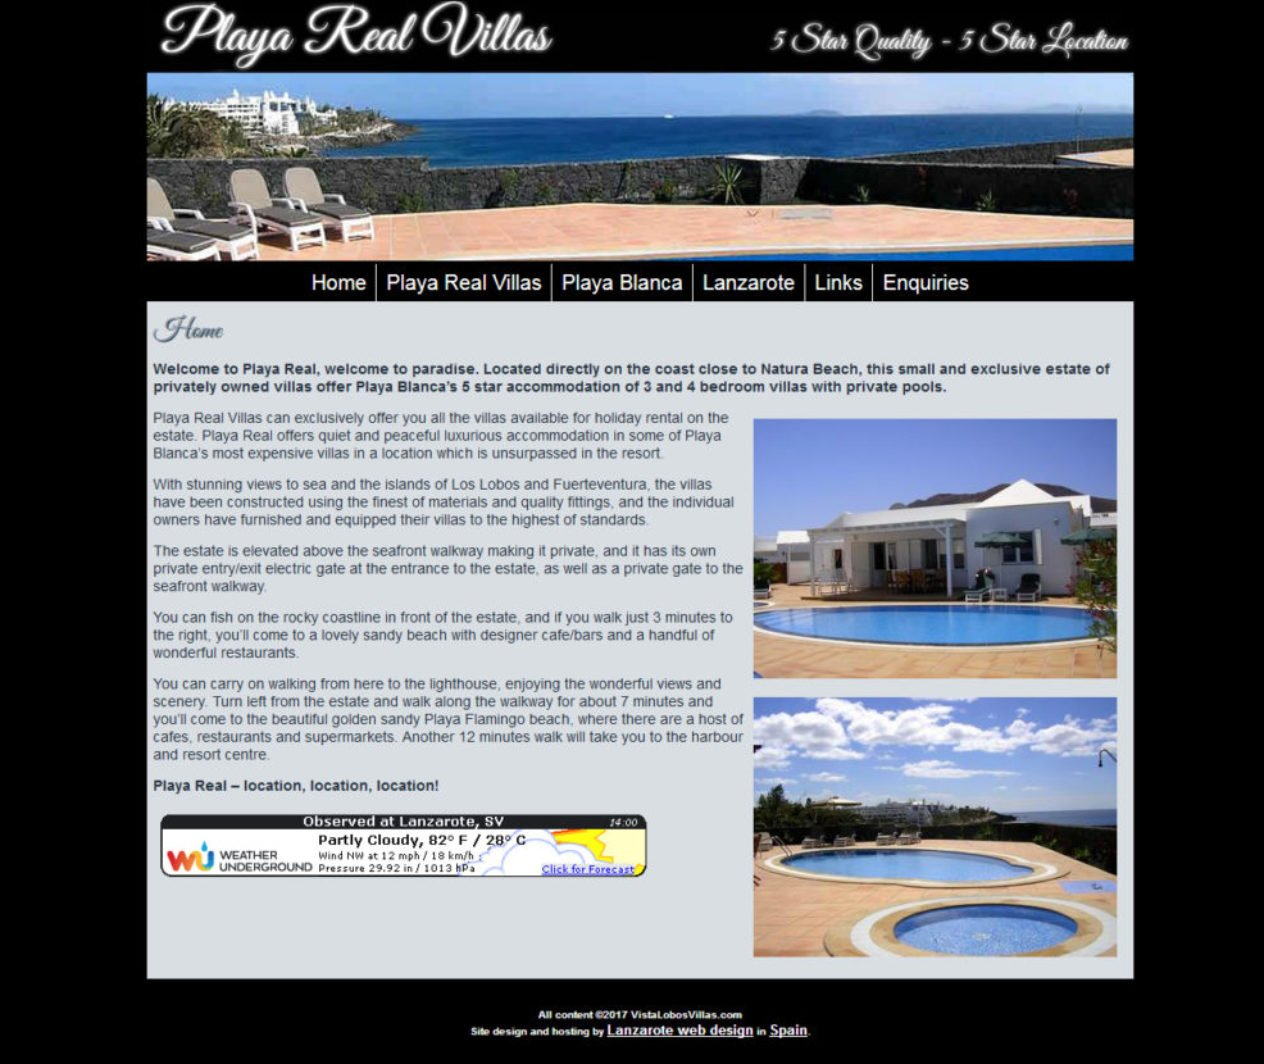 Playa Real Villas